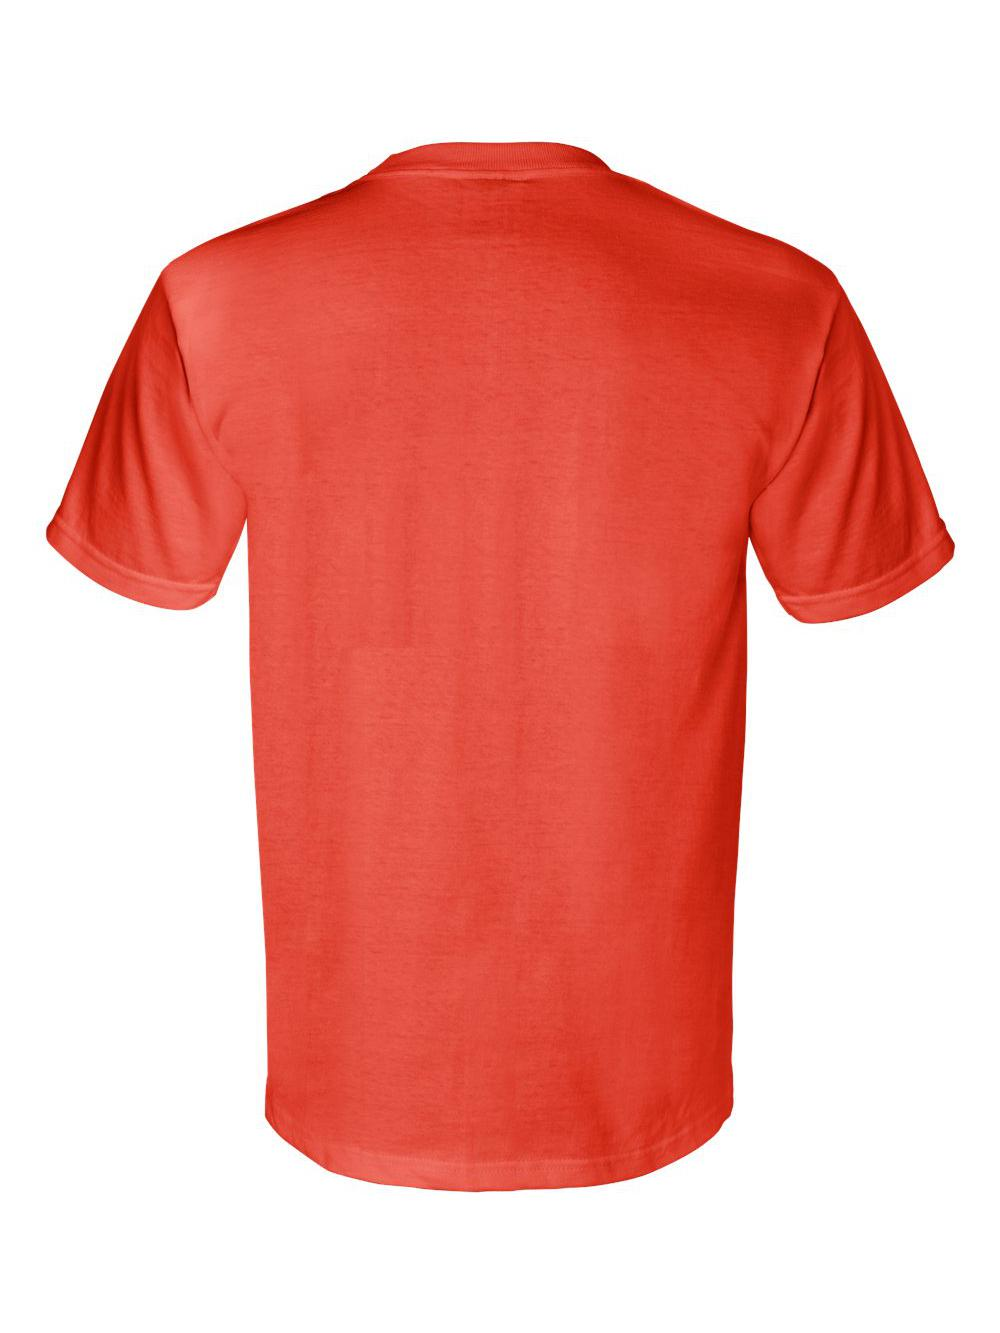 Bayside-Union-Made-Short-Sleeve-T-Shirt-with-a-Pocket-3015 thumbnail 22